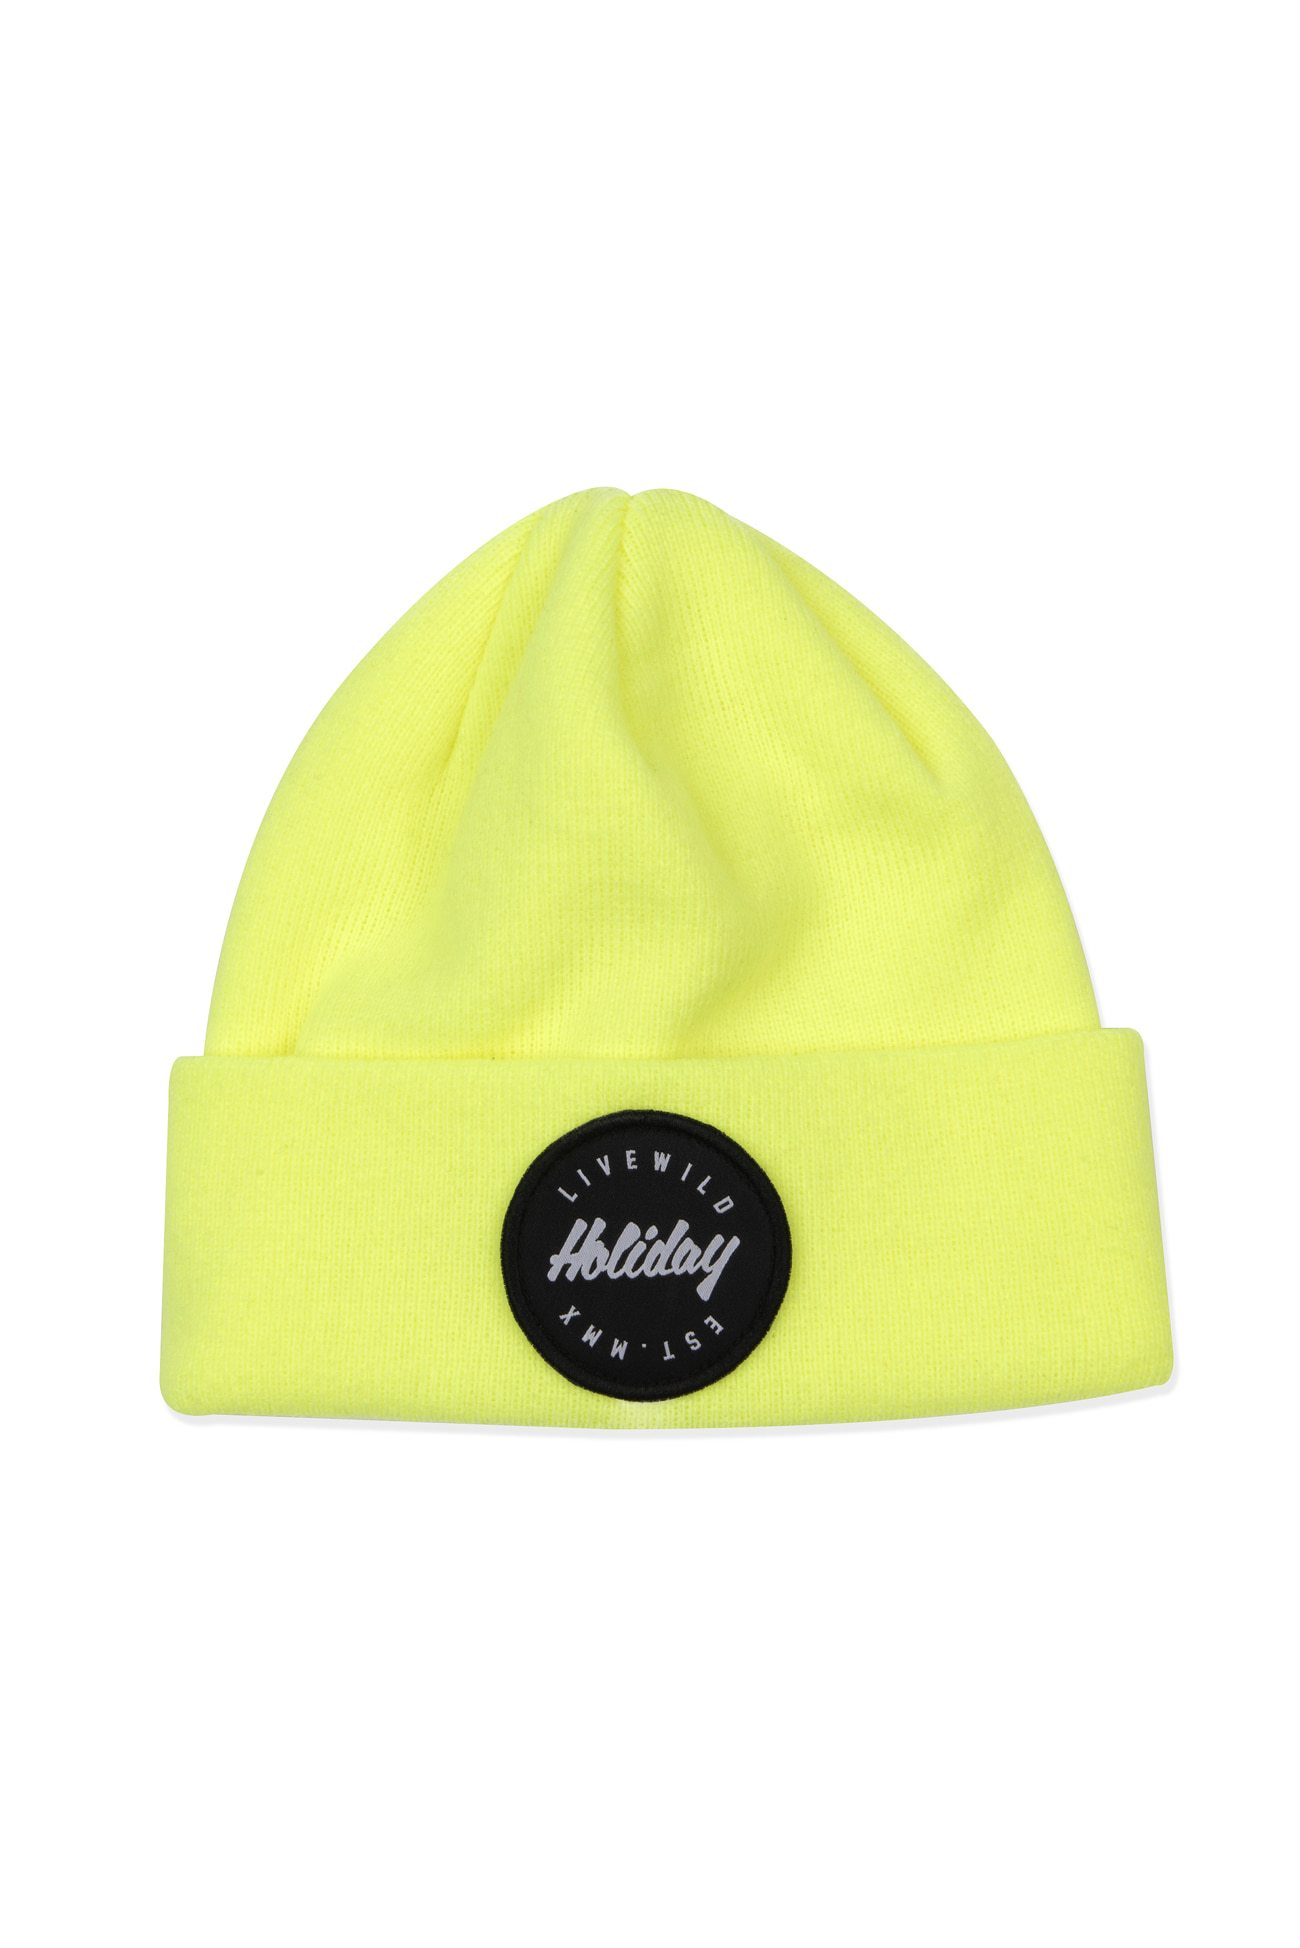 STEEP beanie - neonHOLIDAY OUTERWEAR